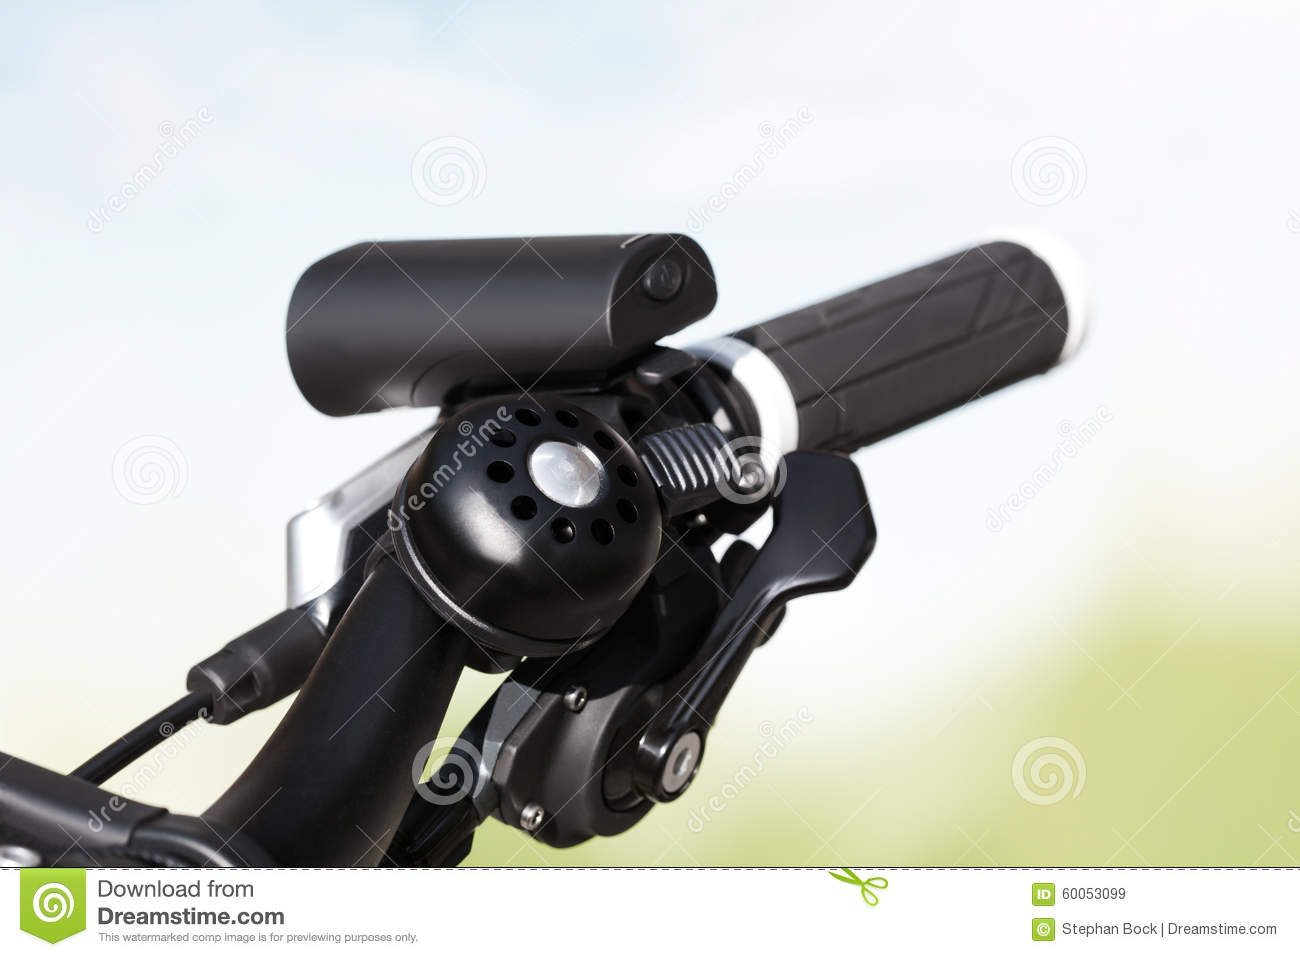 Bicycle, handlebar, headlight, bell, gear shift